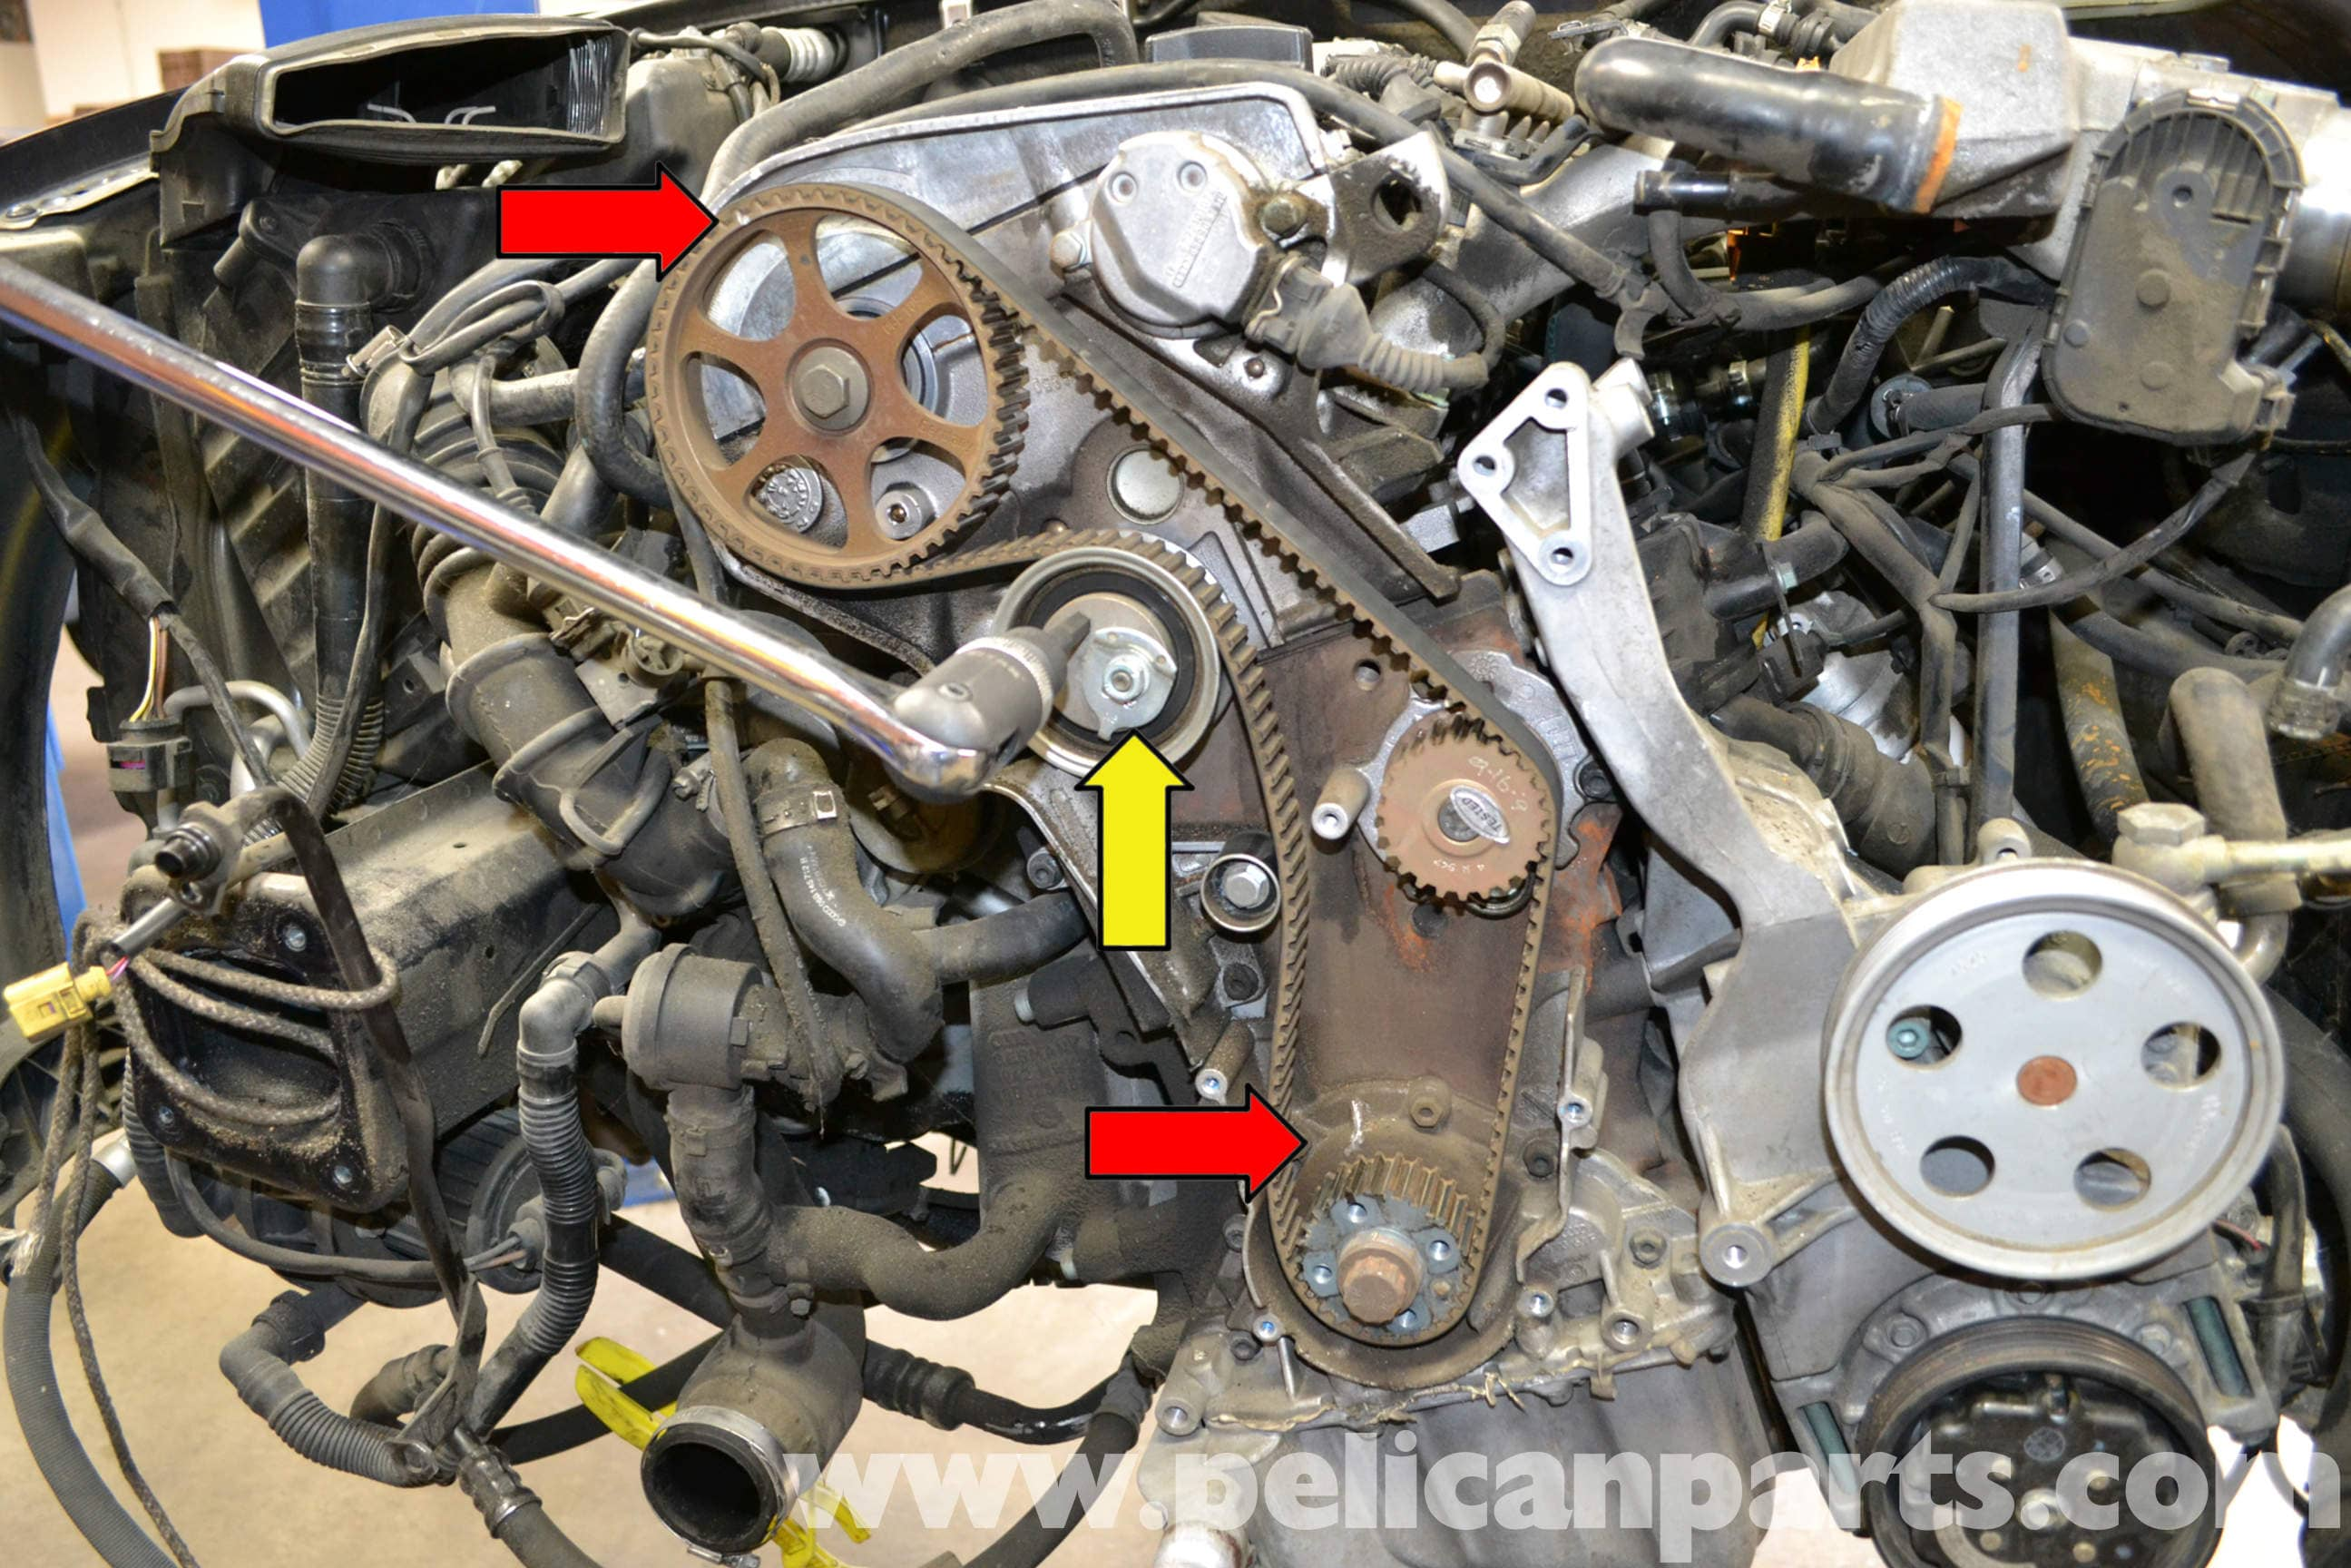 Audi A4 B6 Timing Belt Replacement (1.8T 2002-2008) | Pelican Parts DIY  Maintenance Article | Audi Timing Belt |  | Pelican Parts